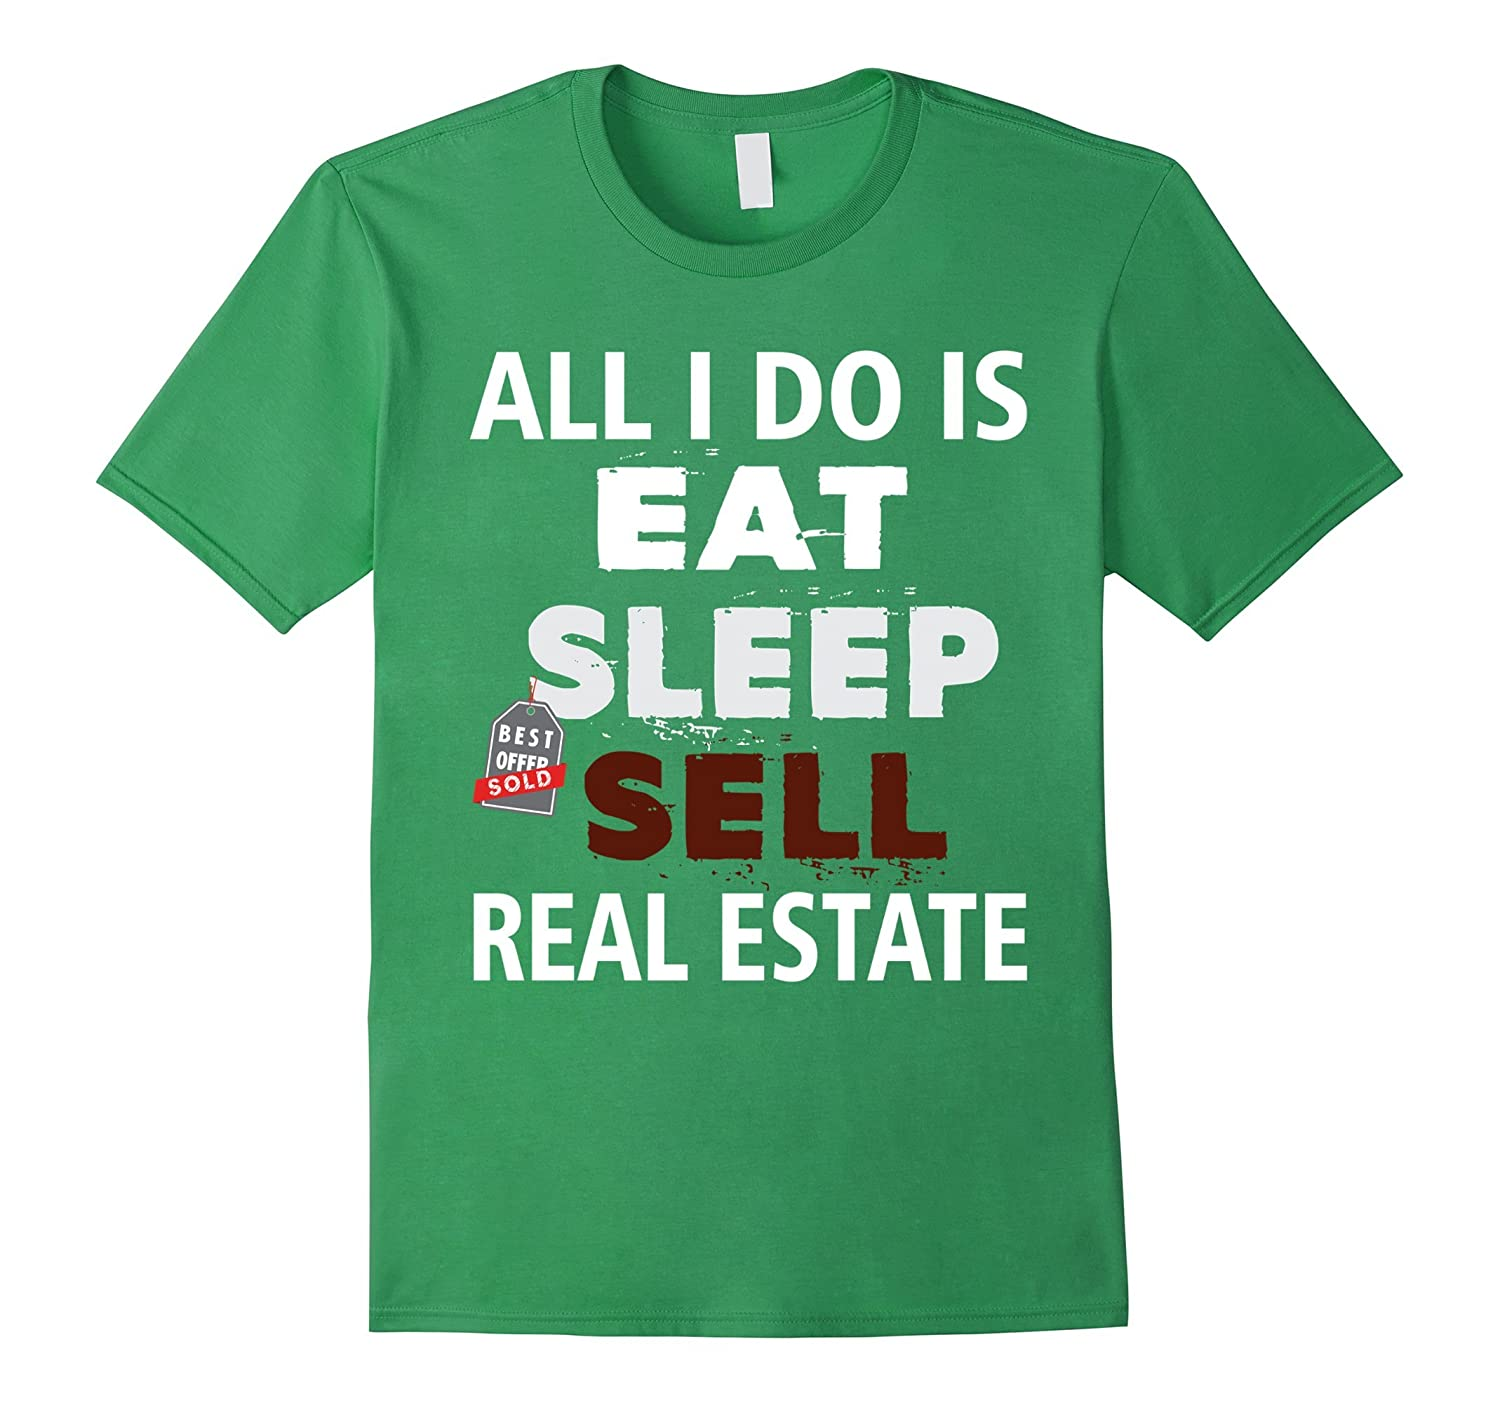 Real Estate Agent T-shirt - All I Do is Eat-Sleep-Sell Real-TD